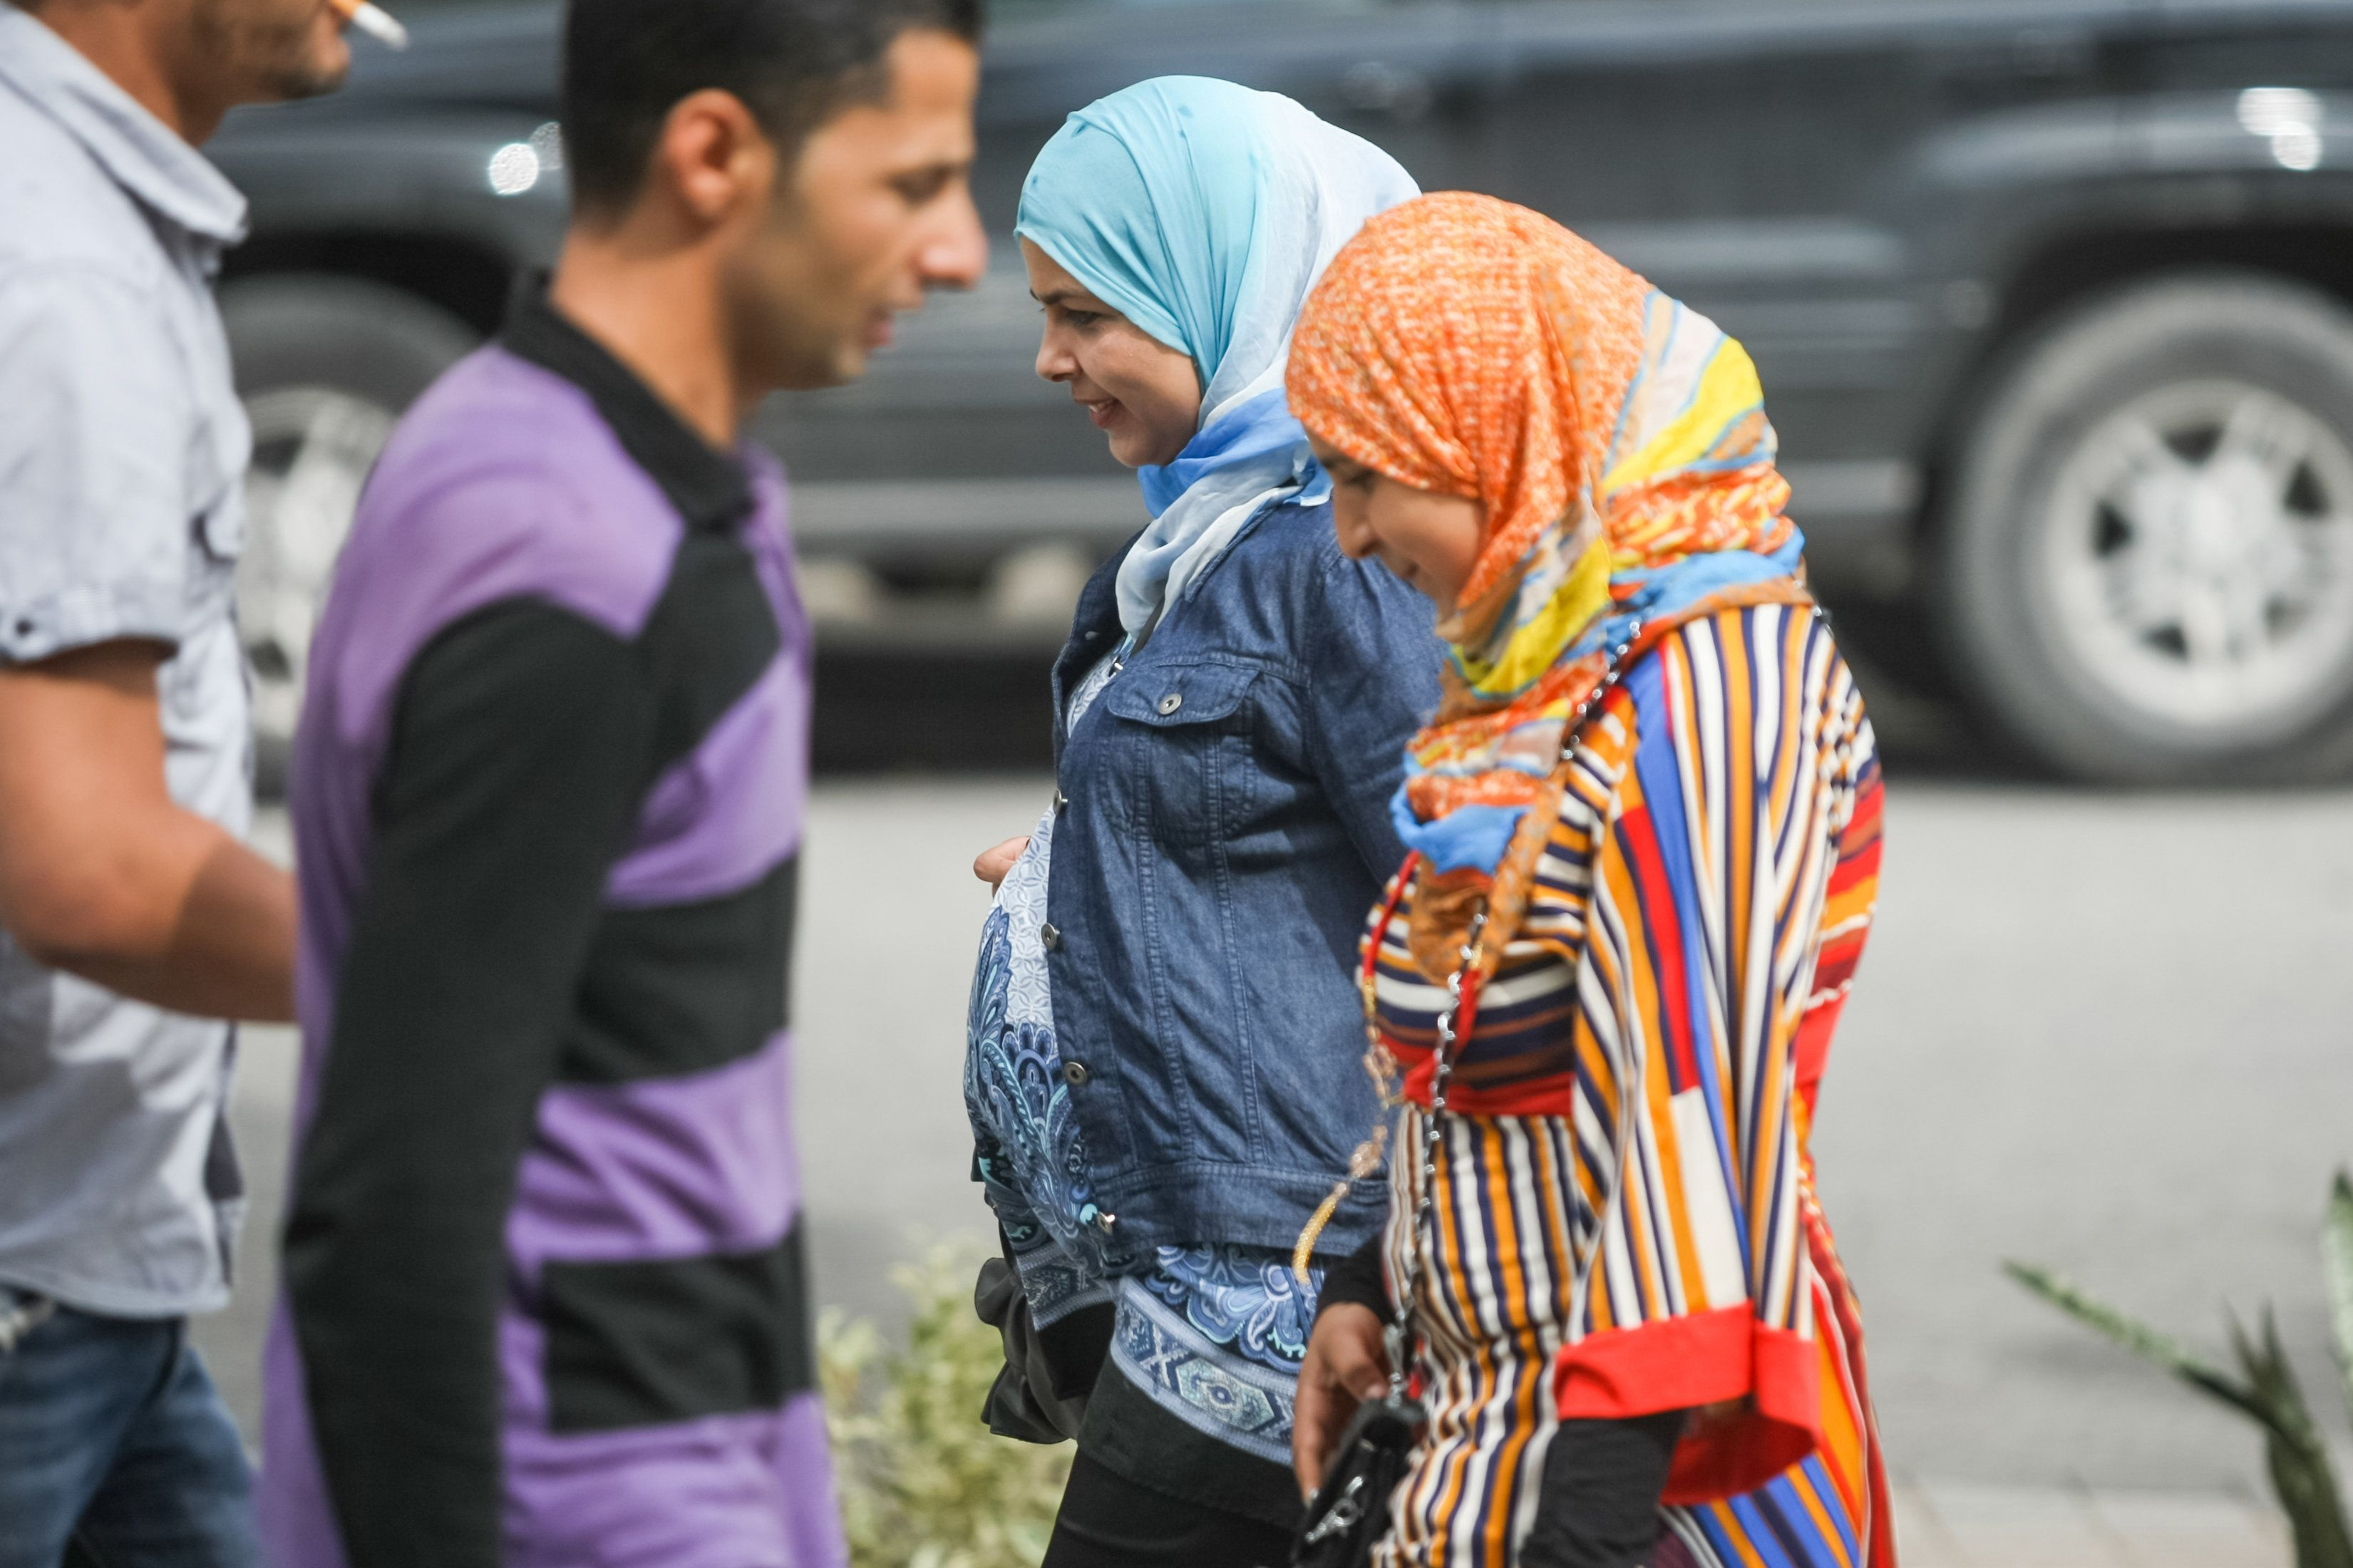 Tunis,Tunisia - September 14, 2012 : Close up of pregnant muslim woman walking in the city streets in Tunis,Tunisia.